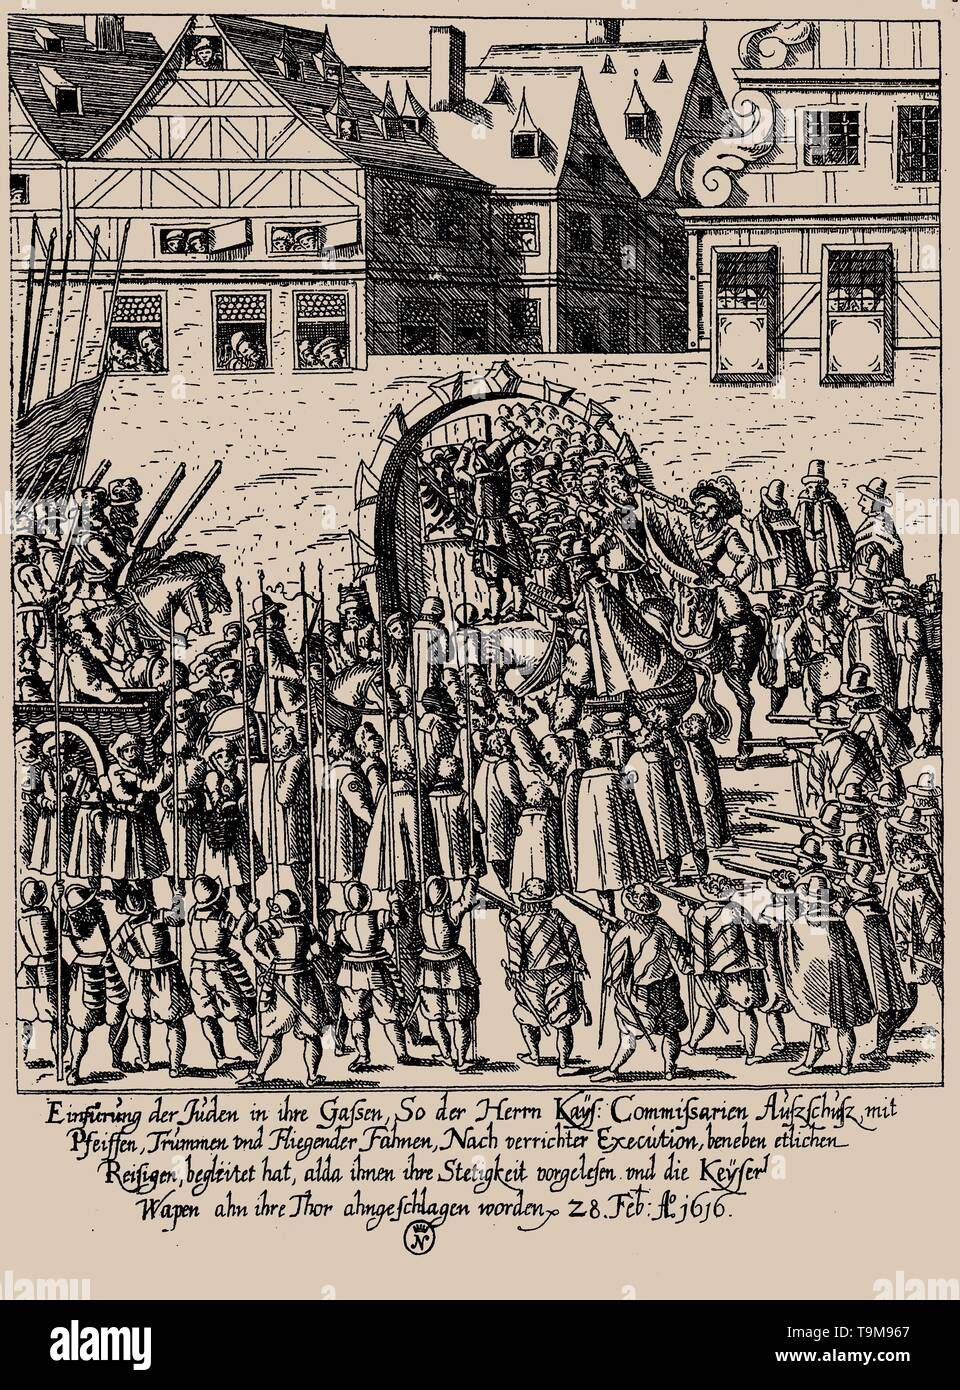 The Fettmilch Rising. Reintroduction of the Jews in Frankfurt on February 28, 1616 according to imperial proclamation. Museum: PRIVATE COLLECTION. Author: GEORG KELLER. - Stock Image